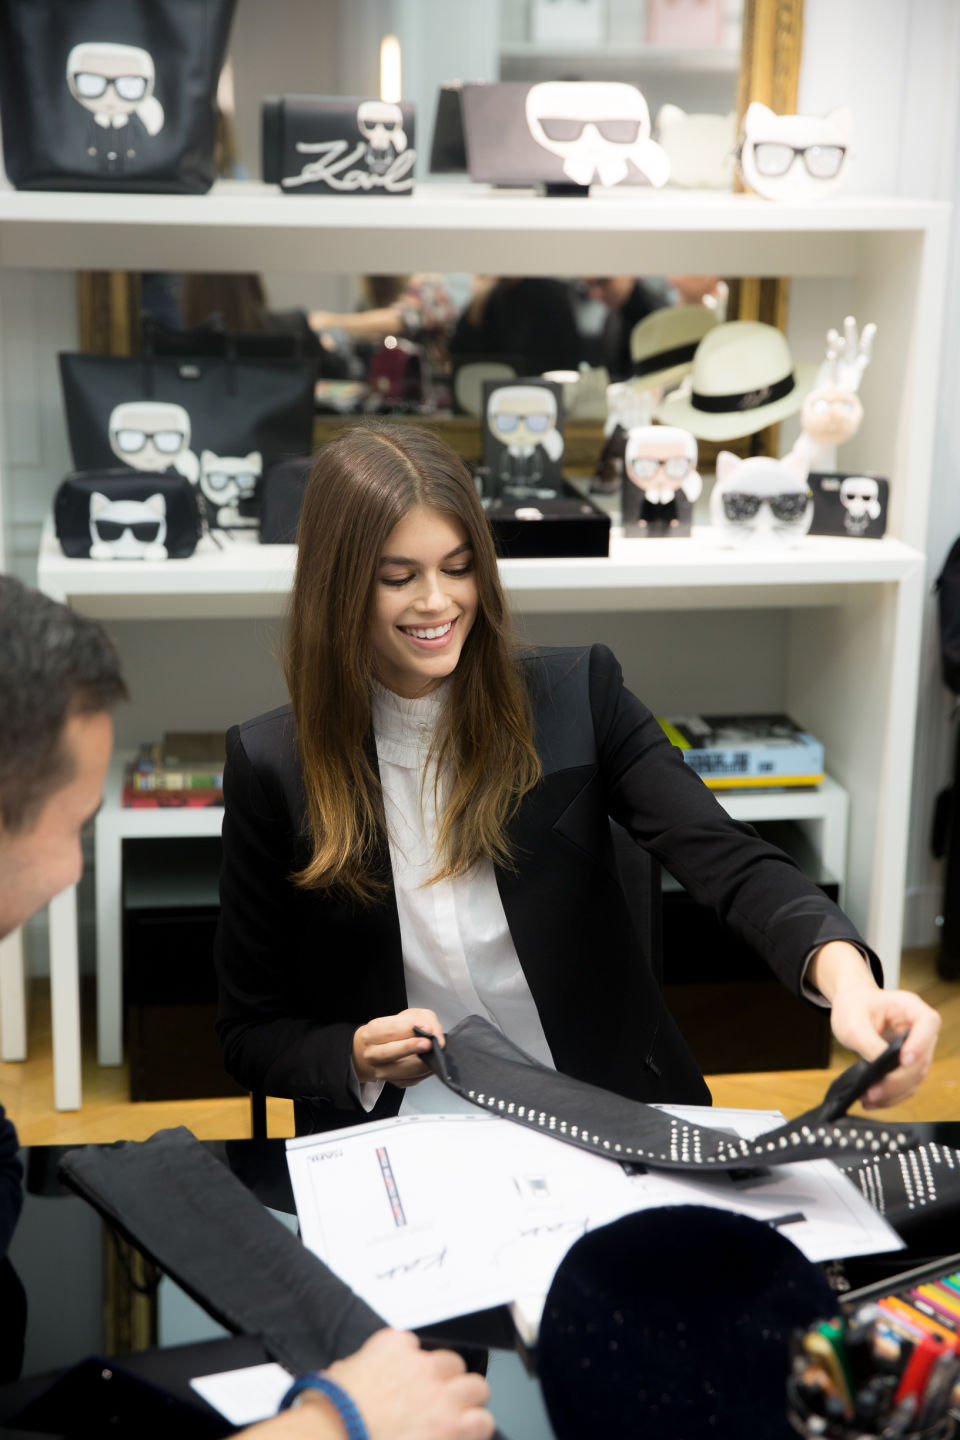 Kaia Gerber working on her collaboration with Lagerfeld (Photo: Romain Mayoussier/Karl Lagerfeld)